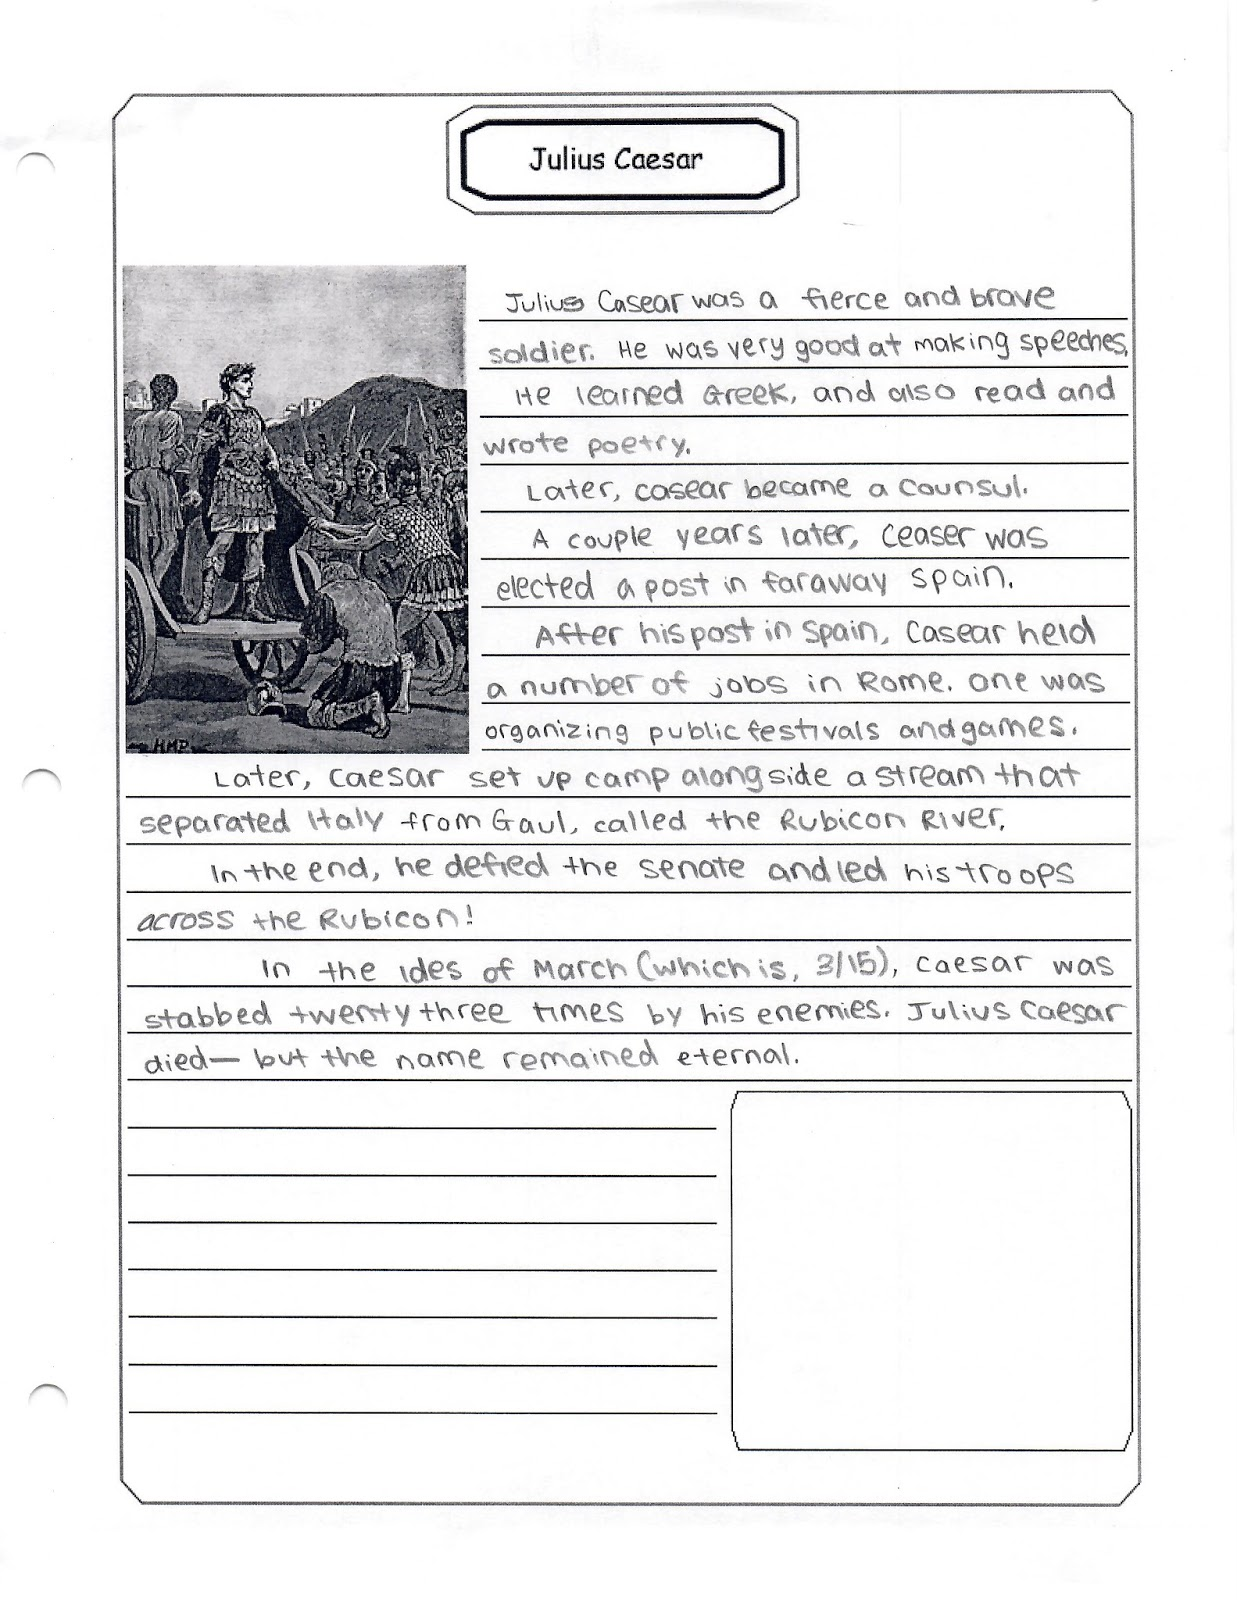 worksheet Julius Caesar Worksheets home su cool 1st grade rome to reformation week 2 julius caesar we read augustus caesars world on cicero mark antony why is july and the starting of civil war